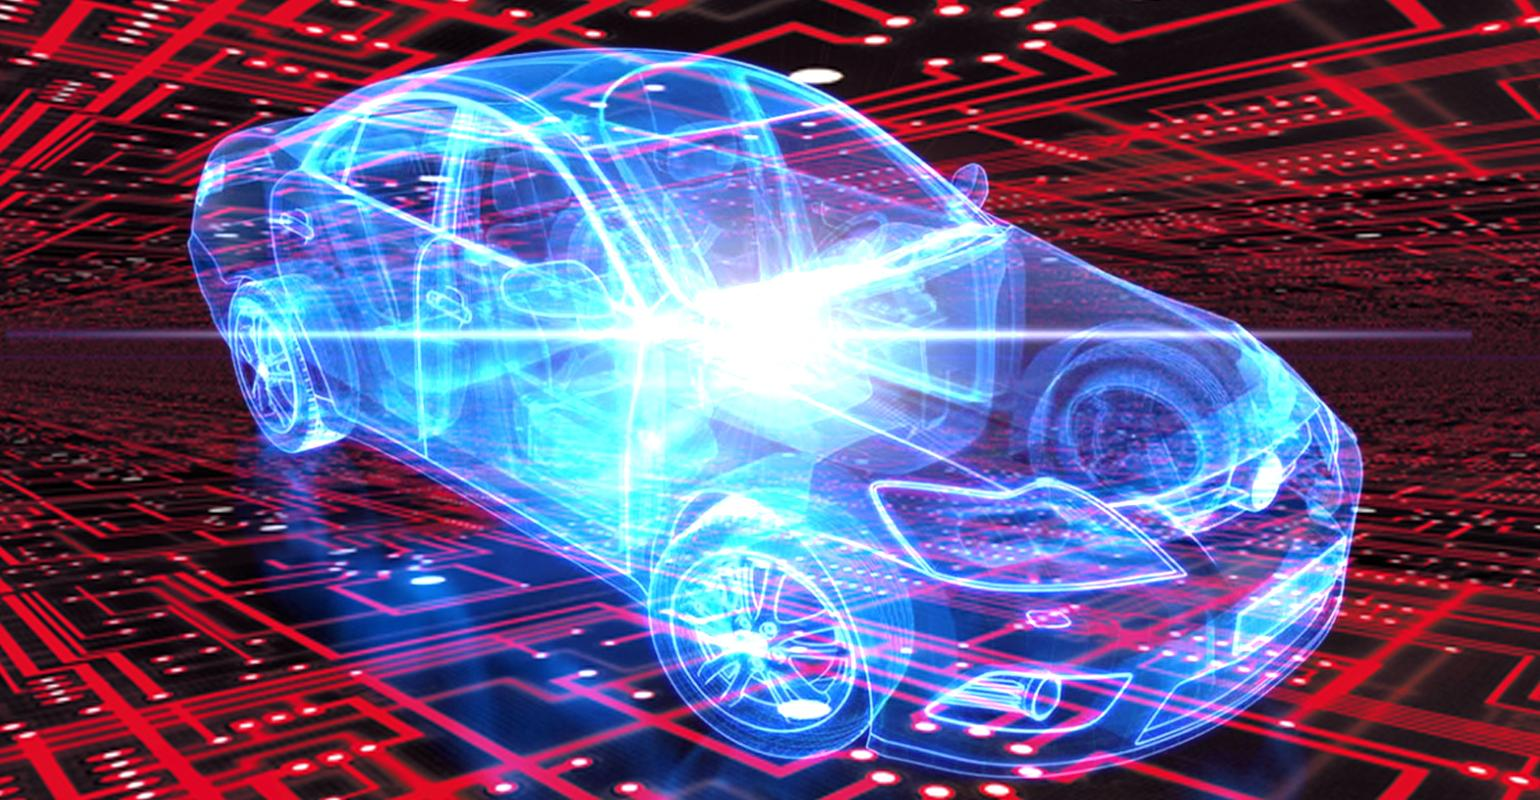 Excellent Growth of Automotive Electronics Market- Comprehensive Study by Key Players: Continental, Altera, Hyundai Mobis, Bosch Group